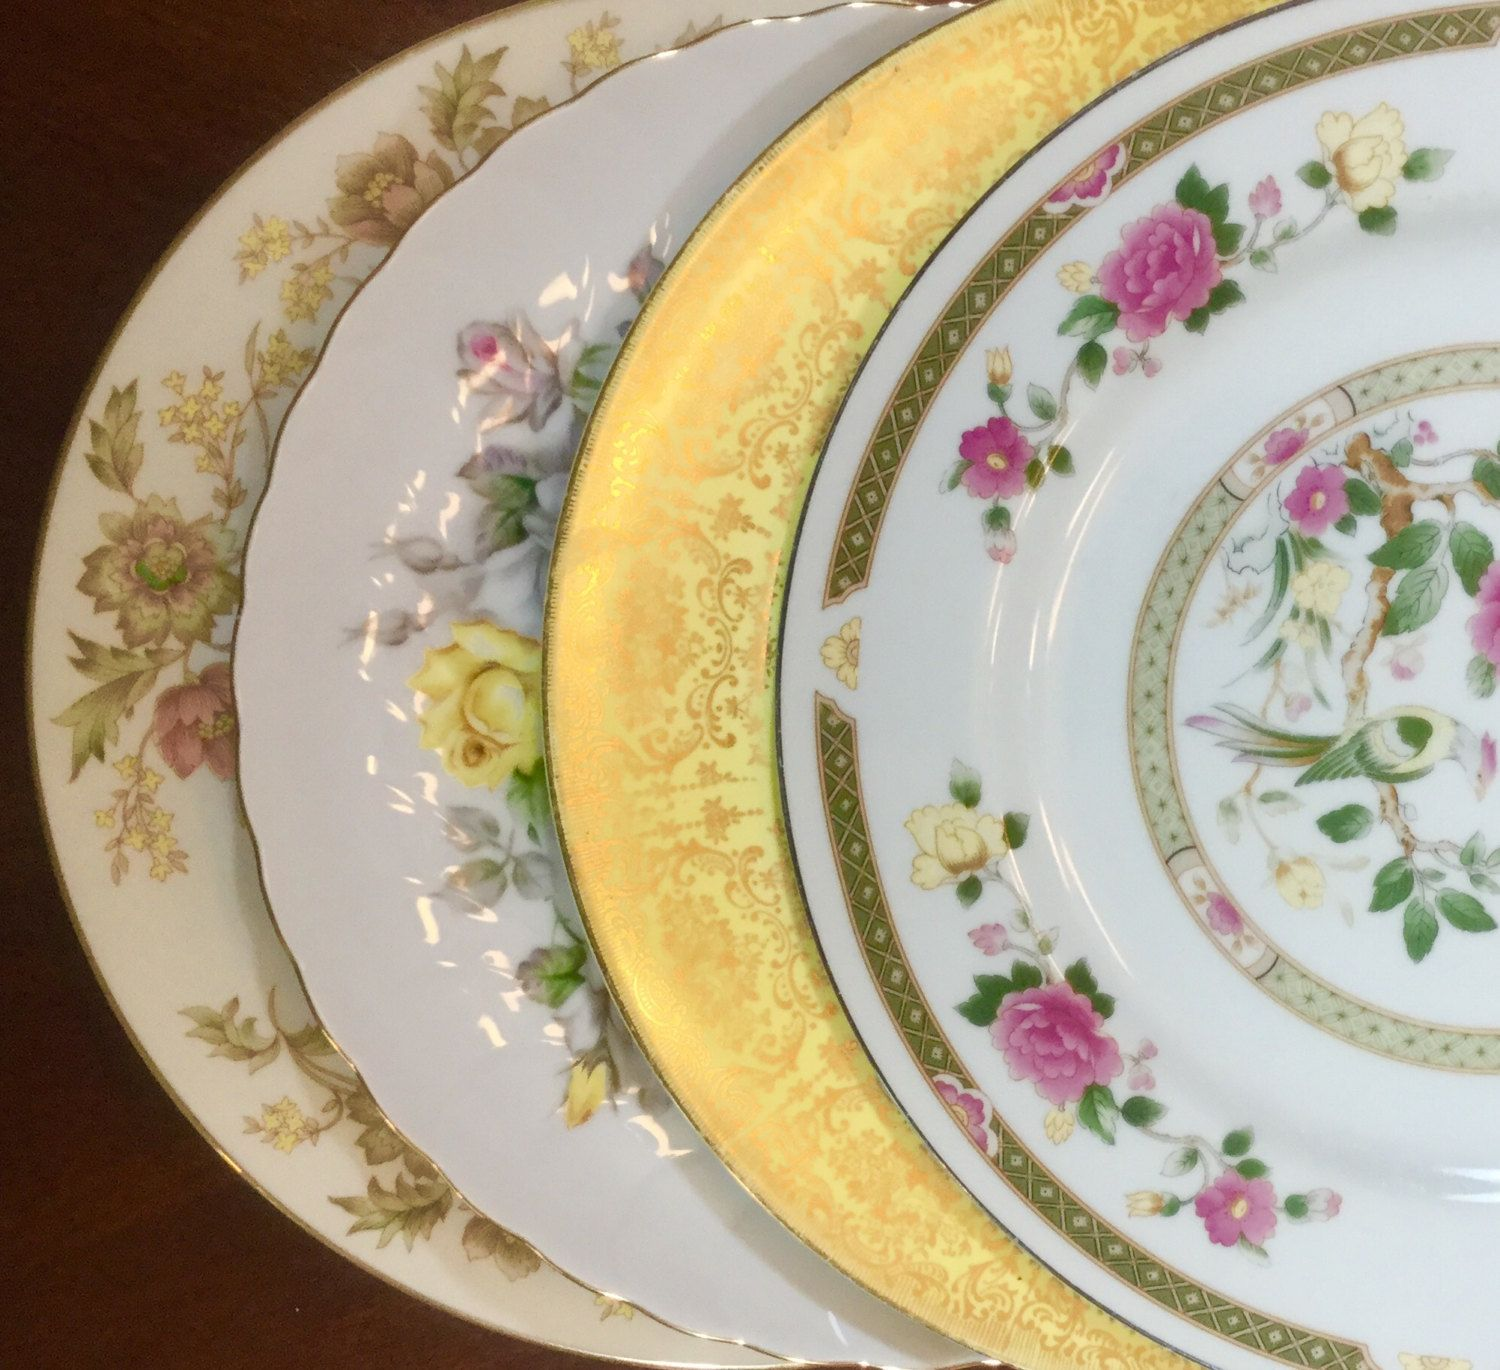 4 MISMATCHED CHINA DINNER Plates Weddings Bridal Shower Tea Party Shabby Chic #166 & 4 MISMATCHED CHINA DINNER Plates Weddings Bridal Shower Tea Party ...